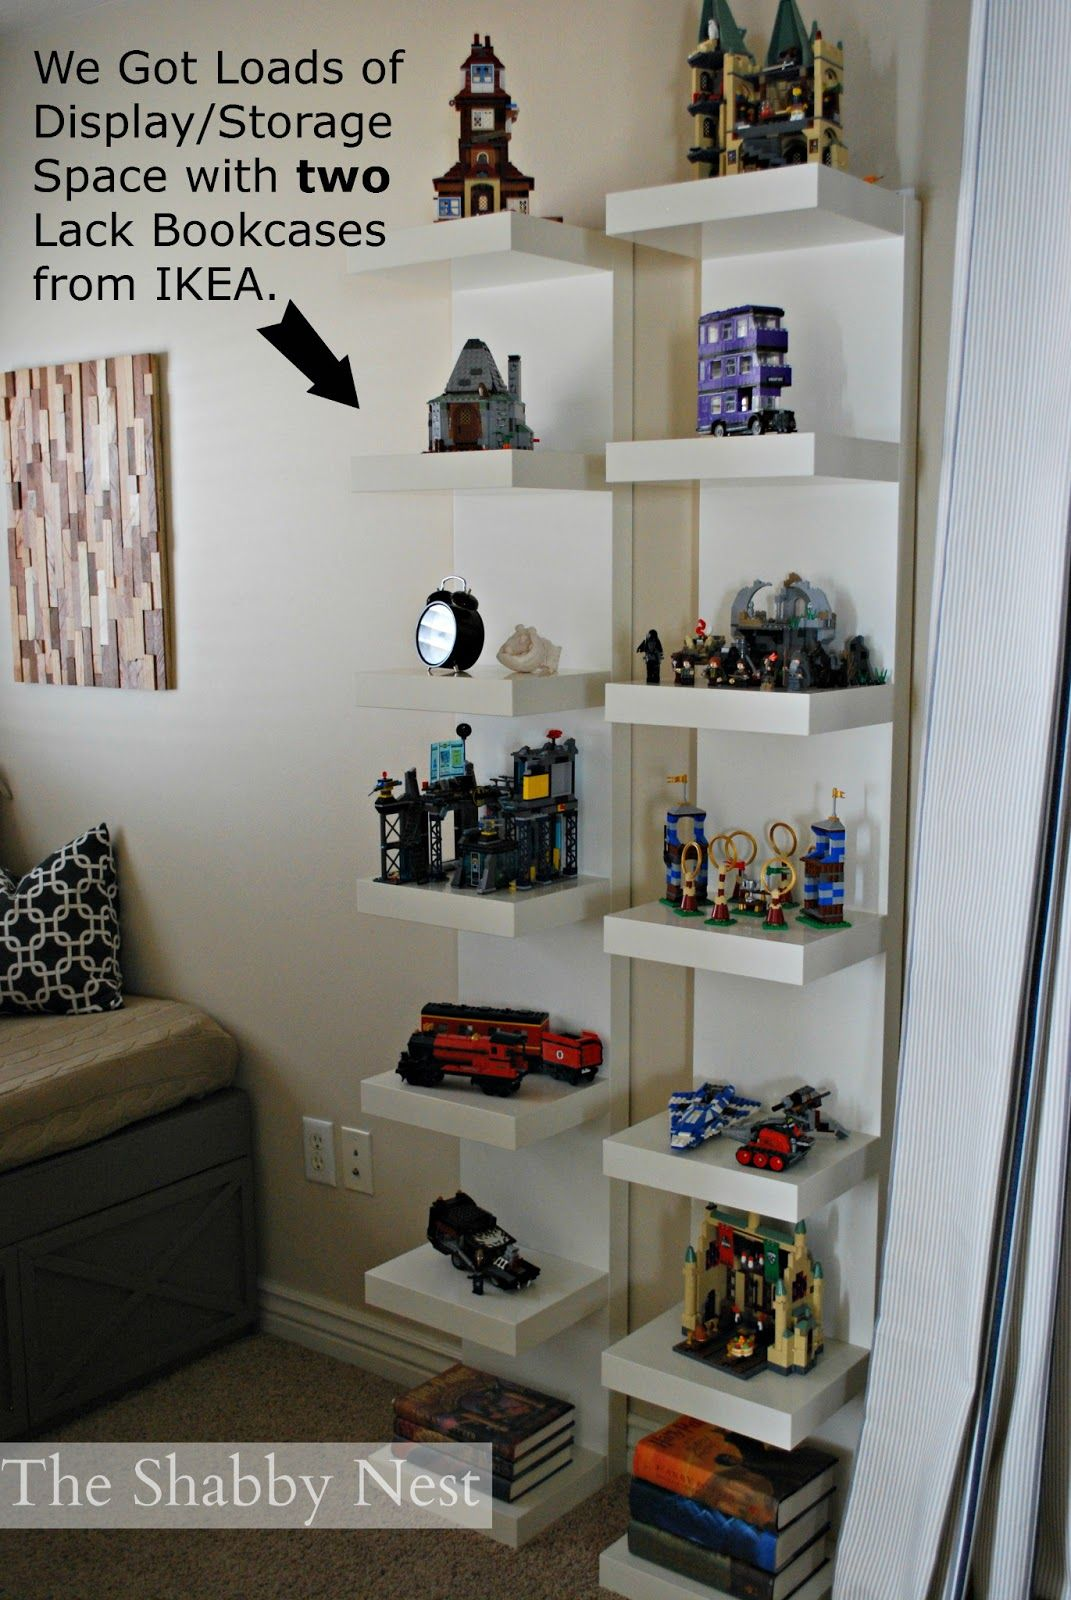 ikea boys lego bedroom ideas used lack bookcases display boy floating shelves for one collection legos and rustic wood mantel pieces sleeper mantle shelf dishes open drawer